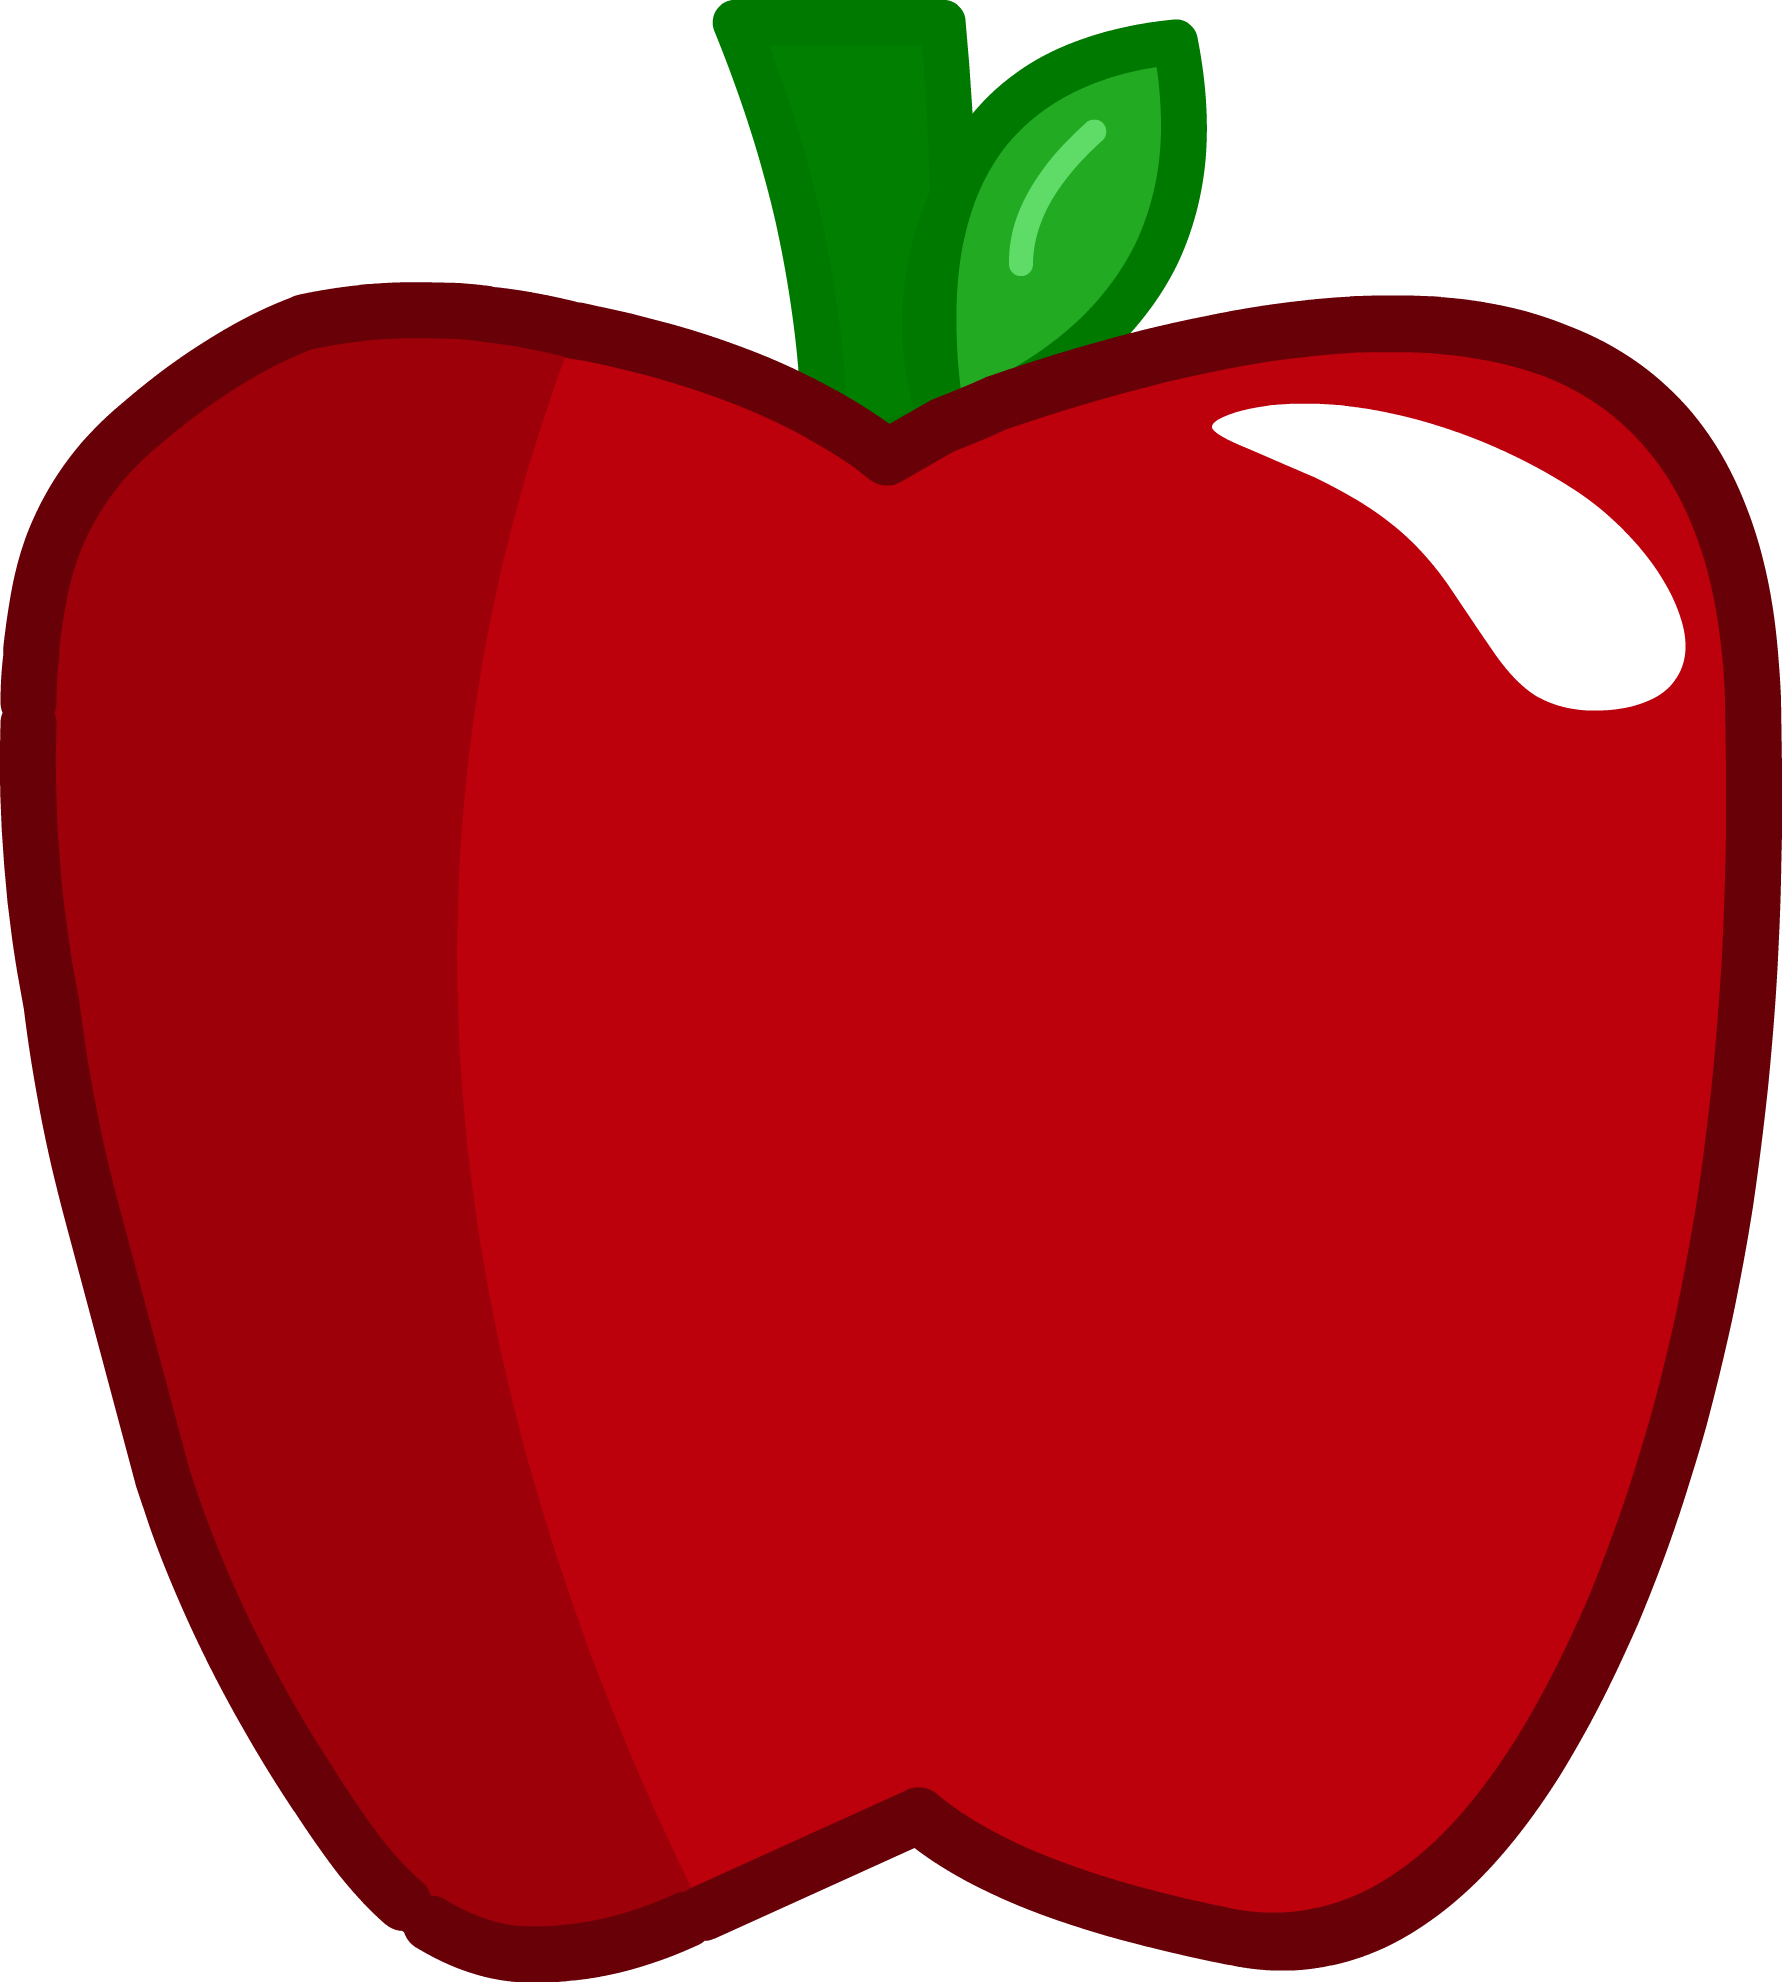 Barrel of apples clipart png. Image apple inanimate insanity